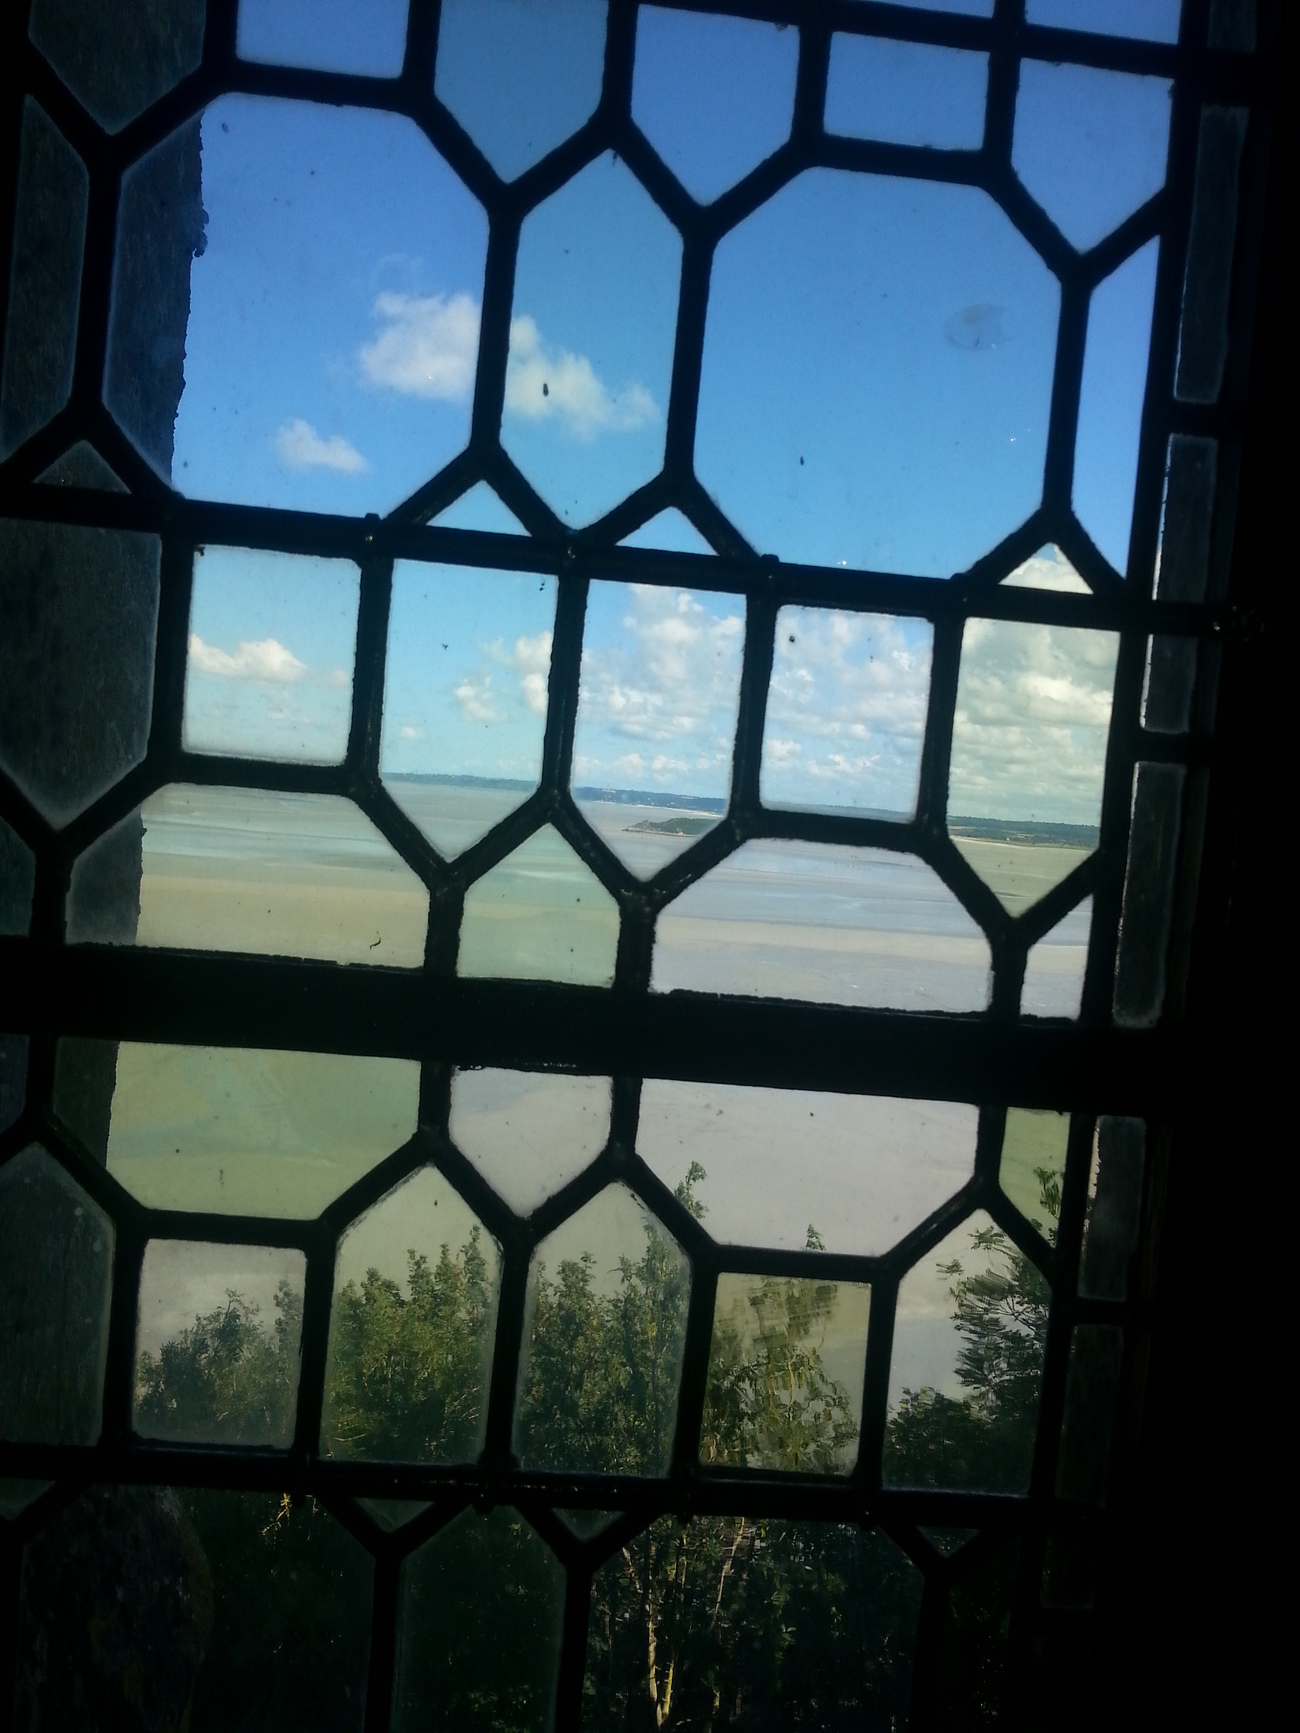 Windows 2 - France by Tipol